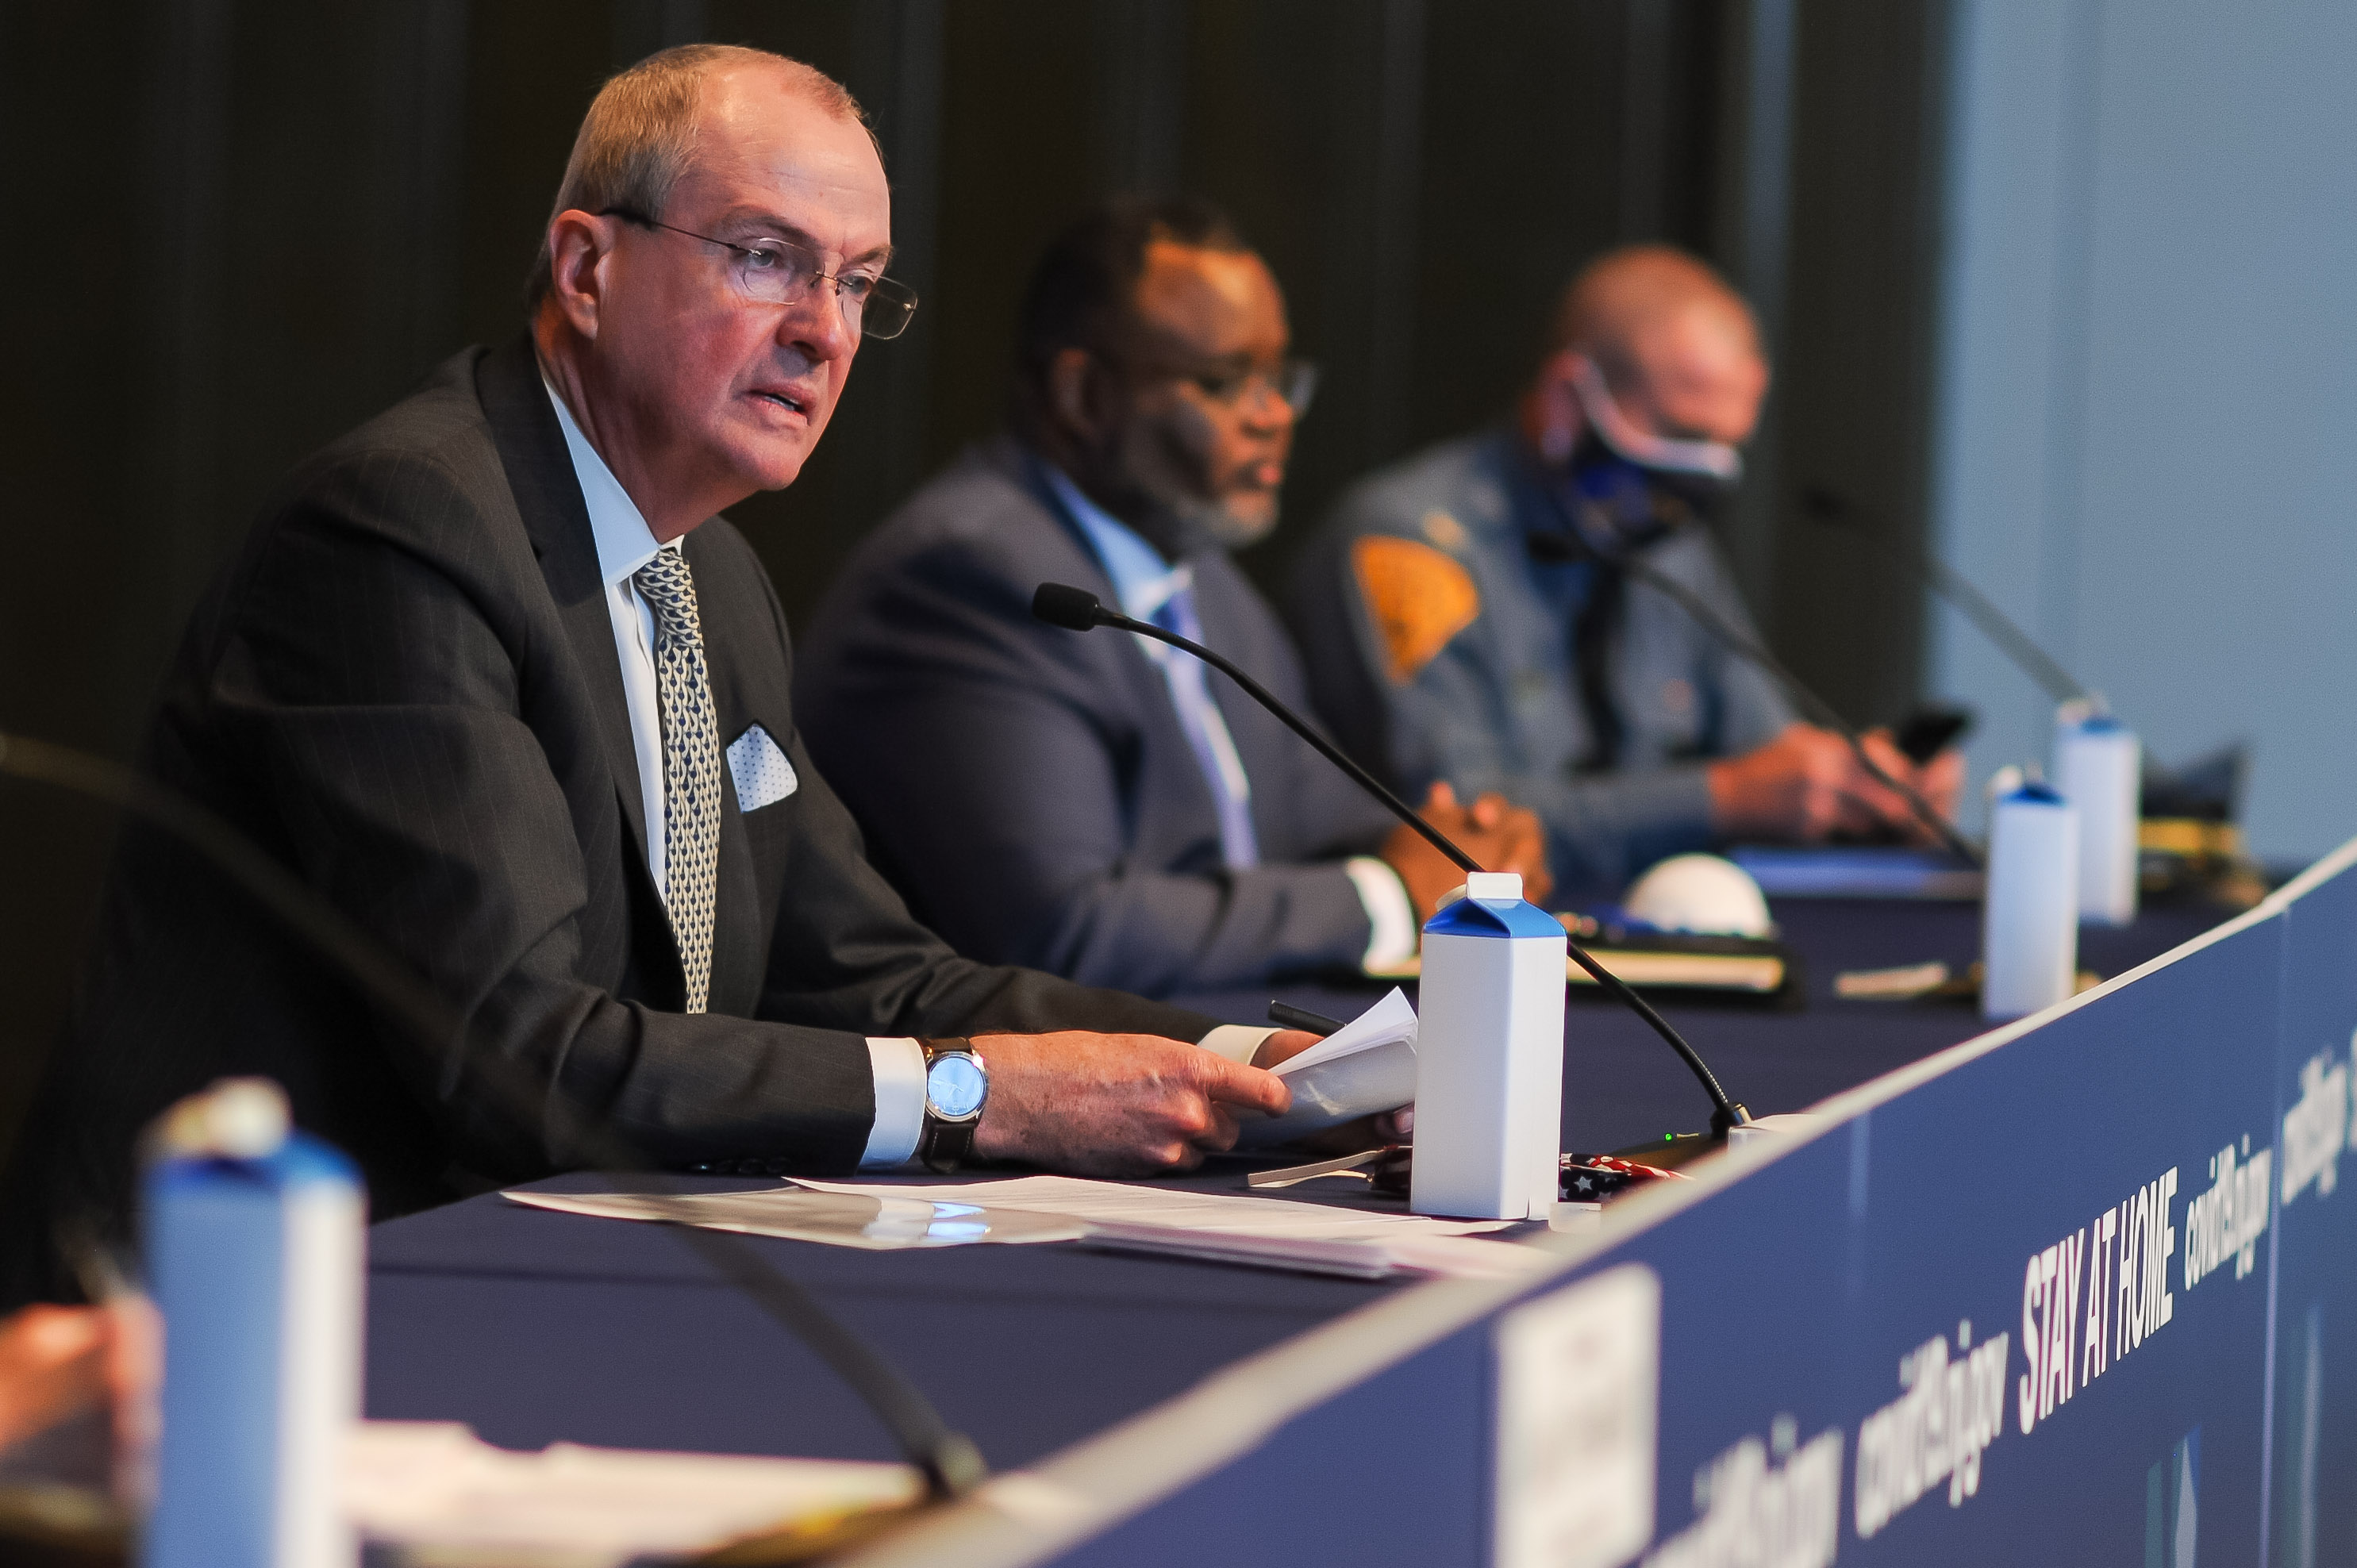 Gov. Phil Murphy holds his daily COVID-19 press briefing in Trenton on May 4, 2020. KEVIN SANDERS, NEW JERSEY GLOBE